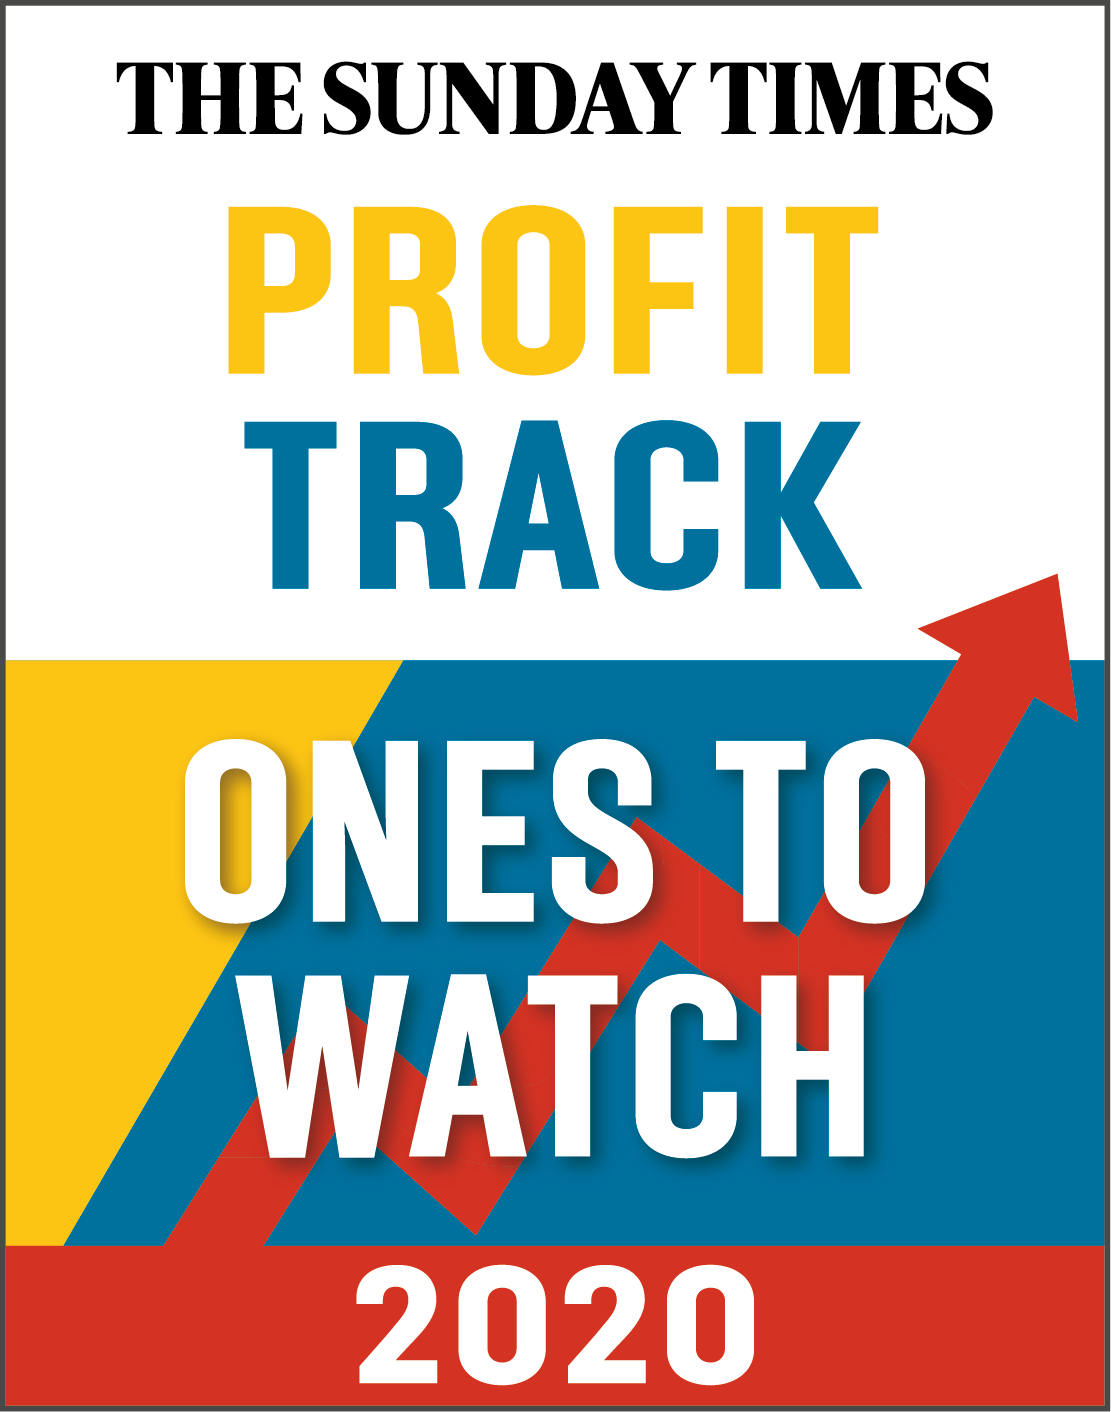 The Sunday Times Profit Track